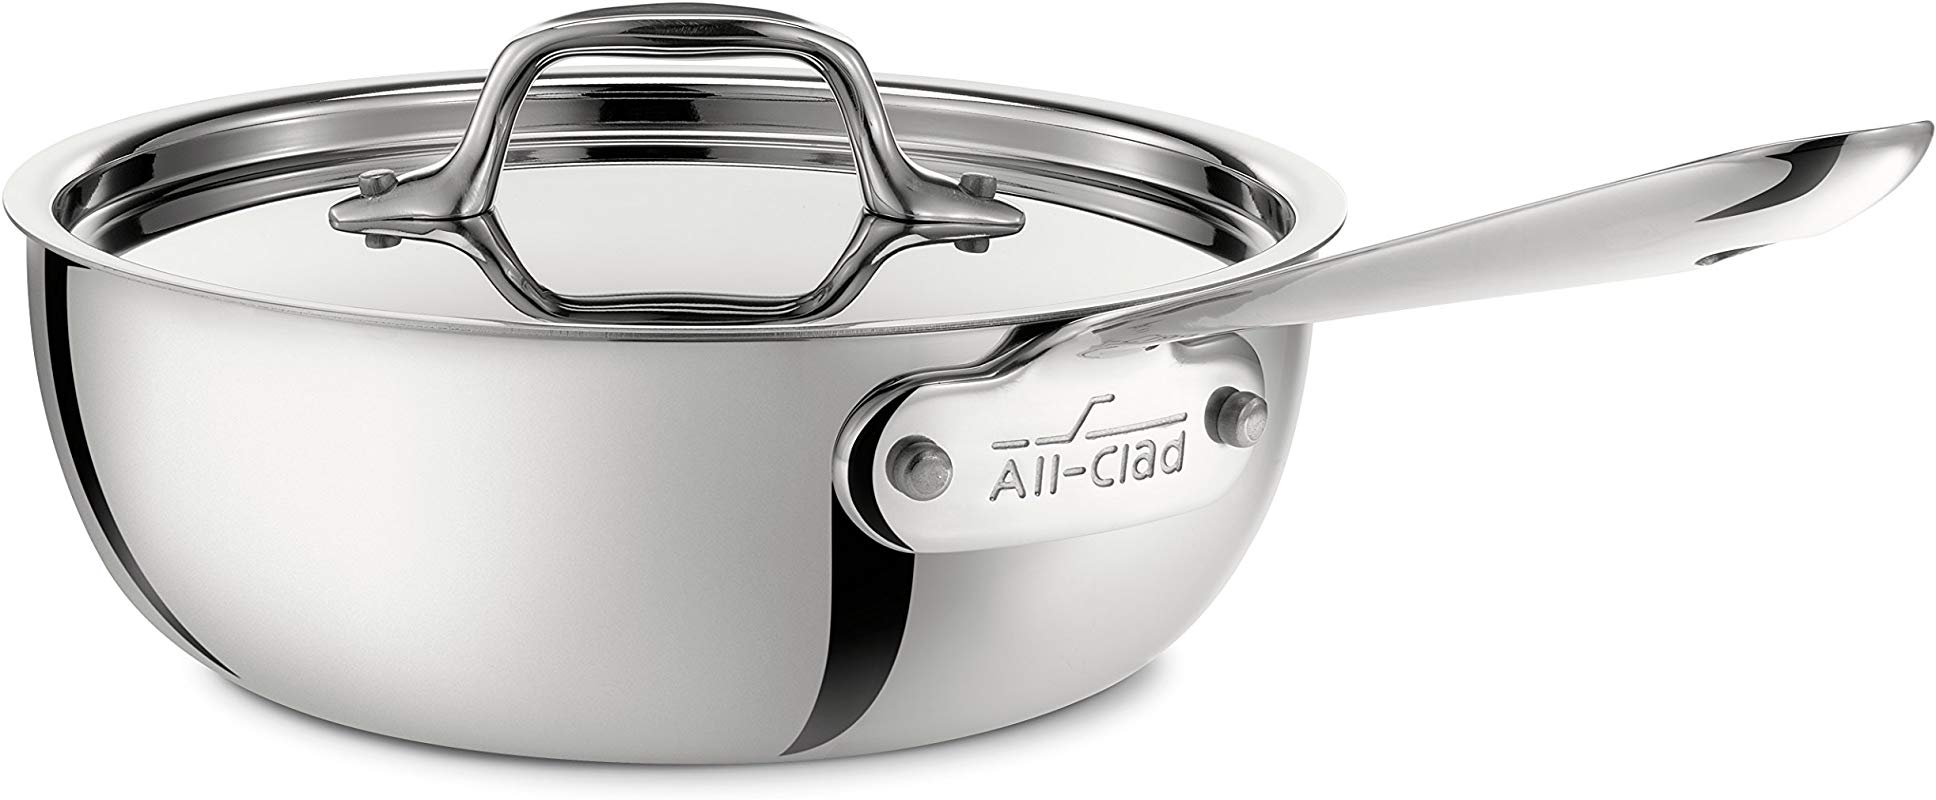 All Clad 4213 Stainless Steel Tri Ply Bonded Dishwasher Safe Saucier Pan With Lid Cookware 3 Quart Silver